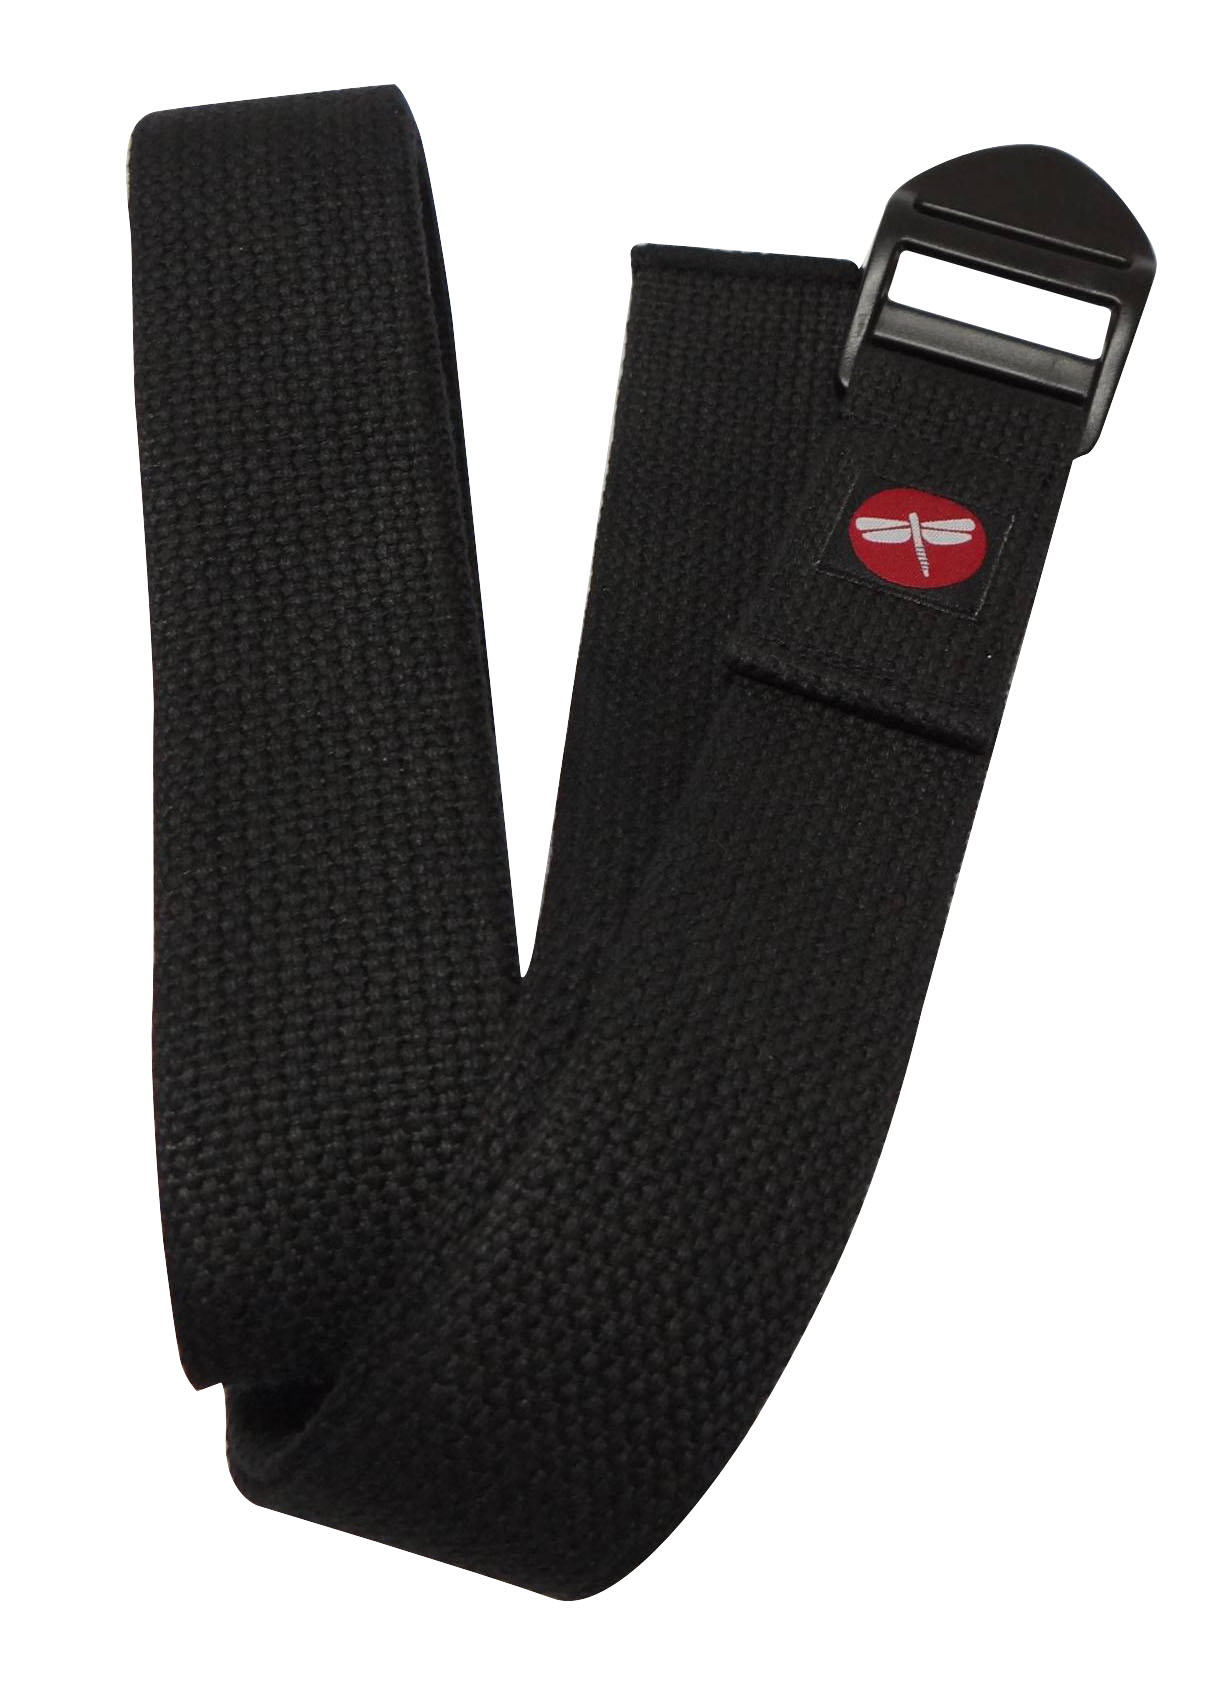 Dragonfly 8′ Cinch Buckle Cotton Yoga Strap by Dragonfly